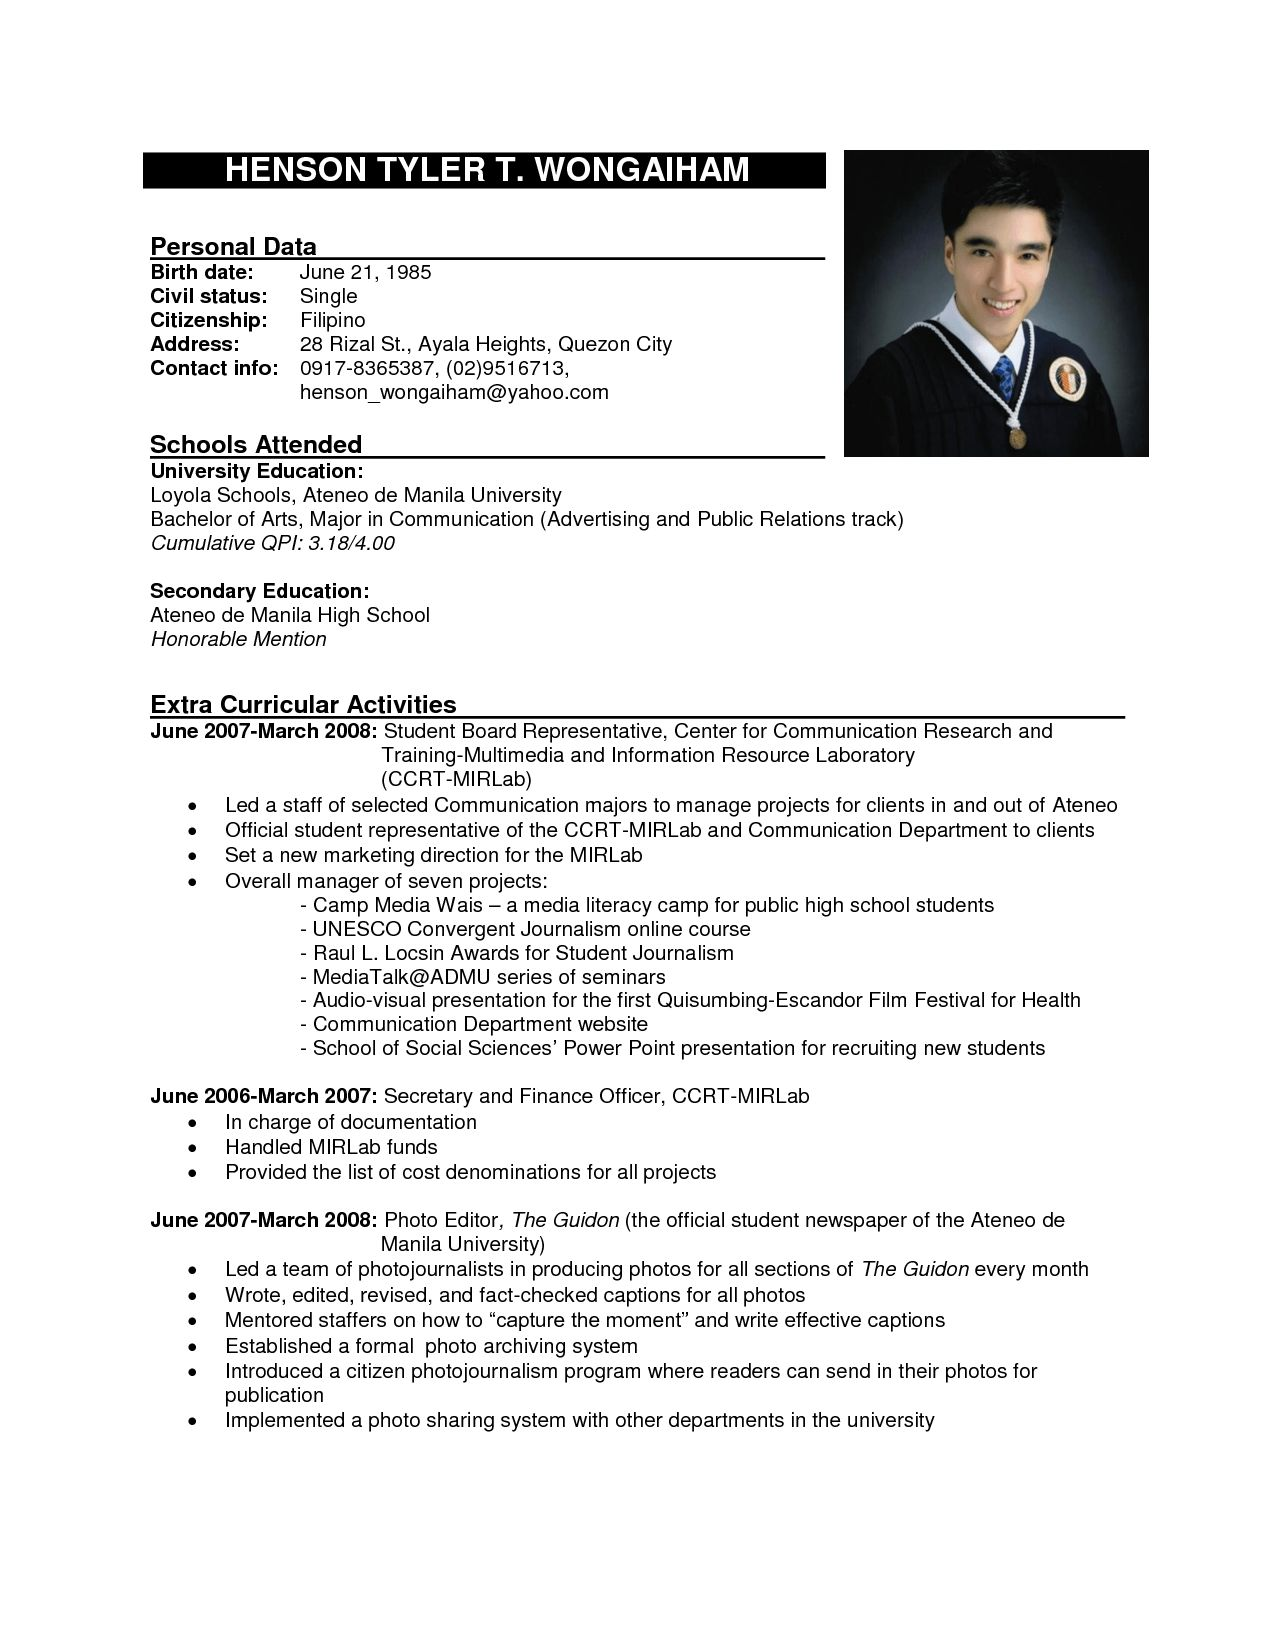 Sample Resume Template Marvellous Resume Sample Format Formal Training And Official